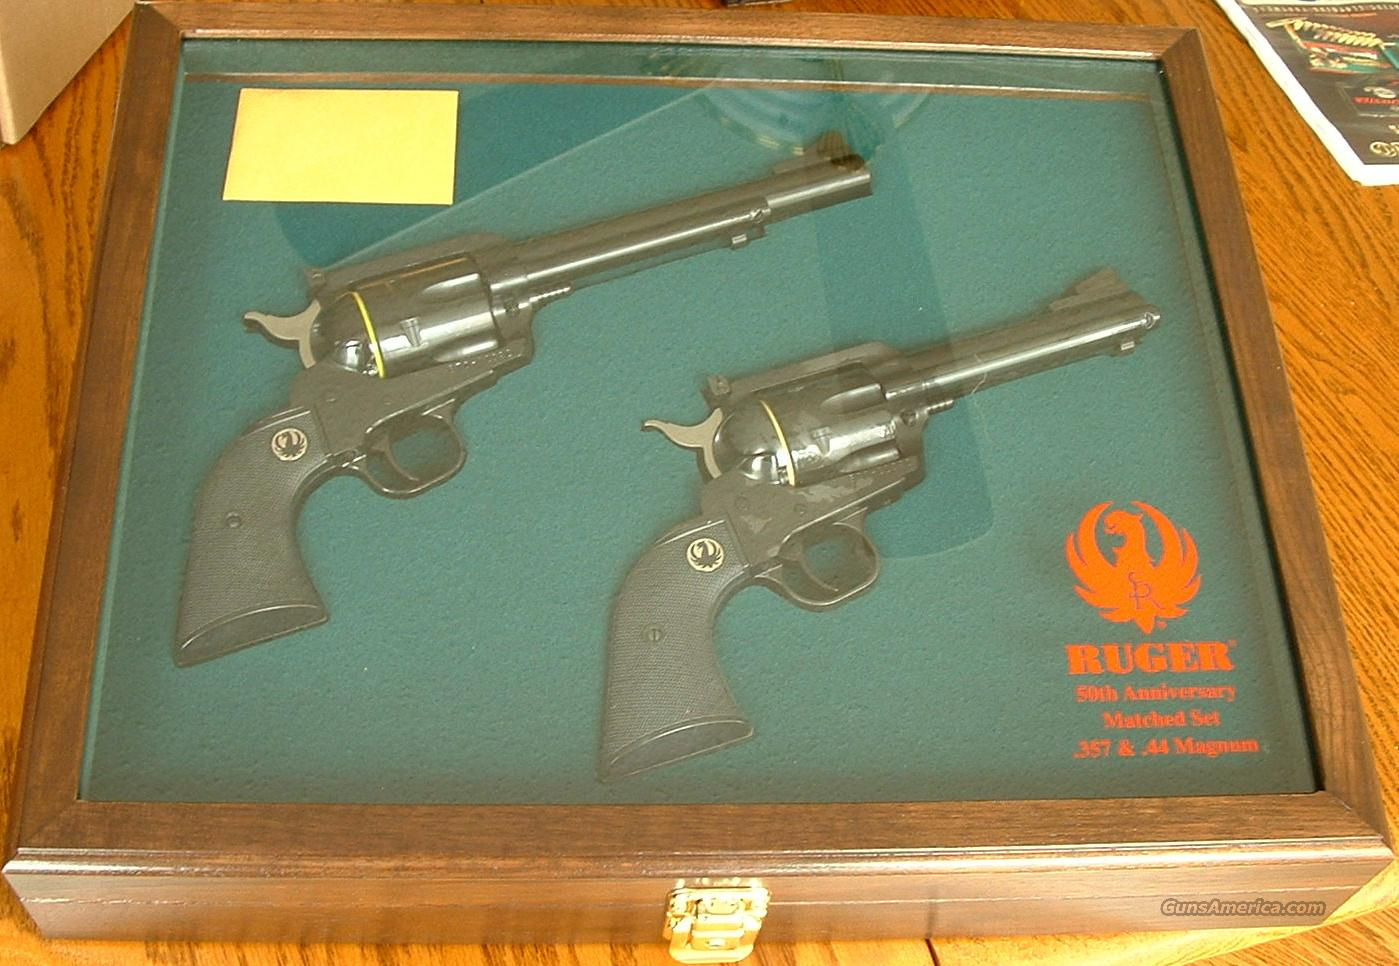 Ruger Blackhawk 50th Anniversary MATCHED SET - New!  Guns > Pistols > Ruger Single Action Revolvers